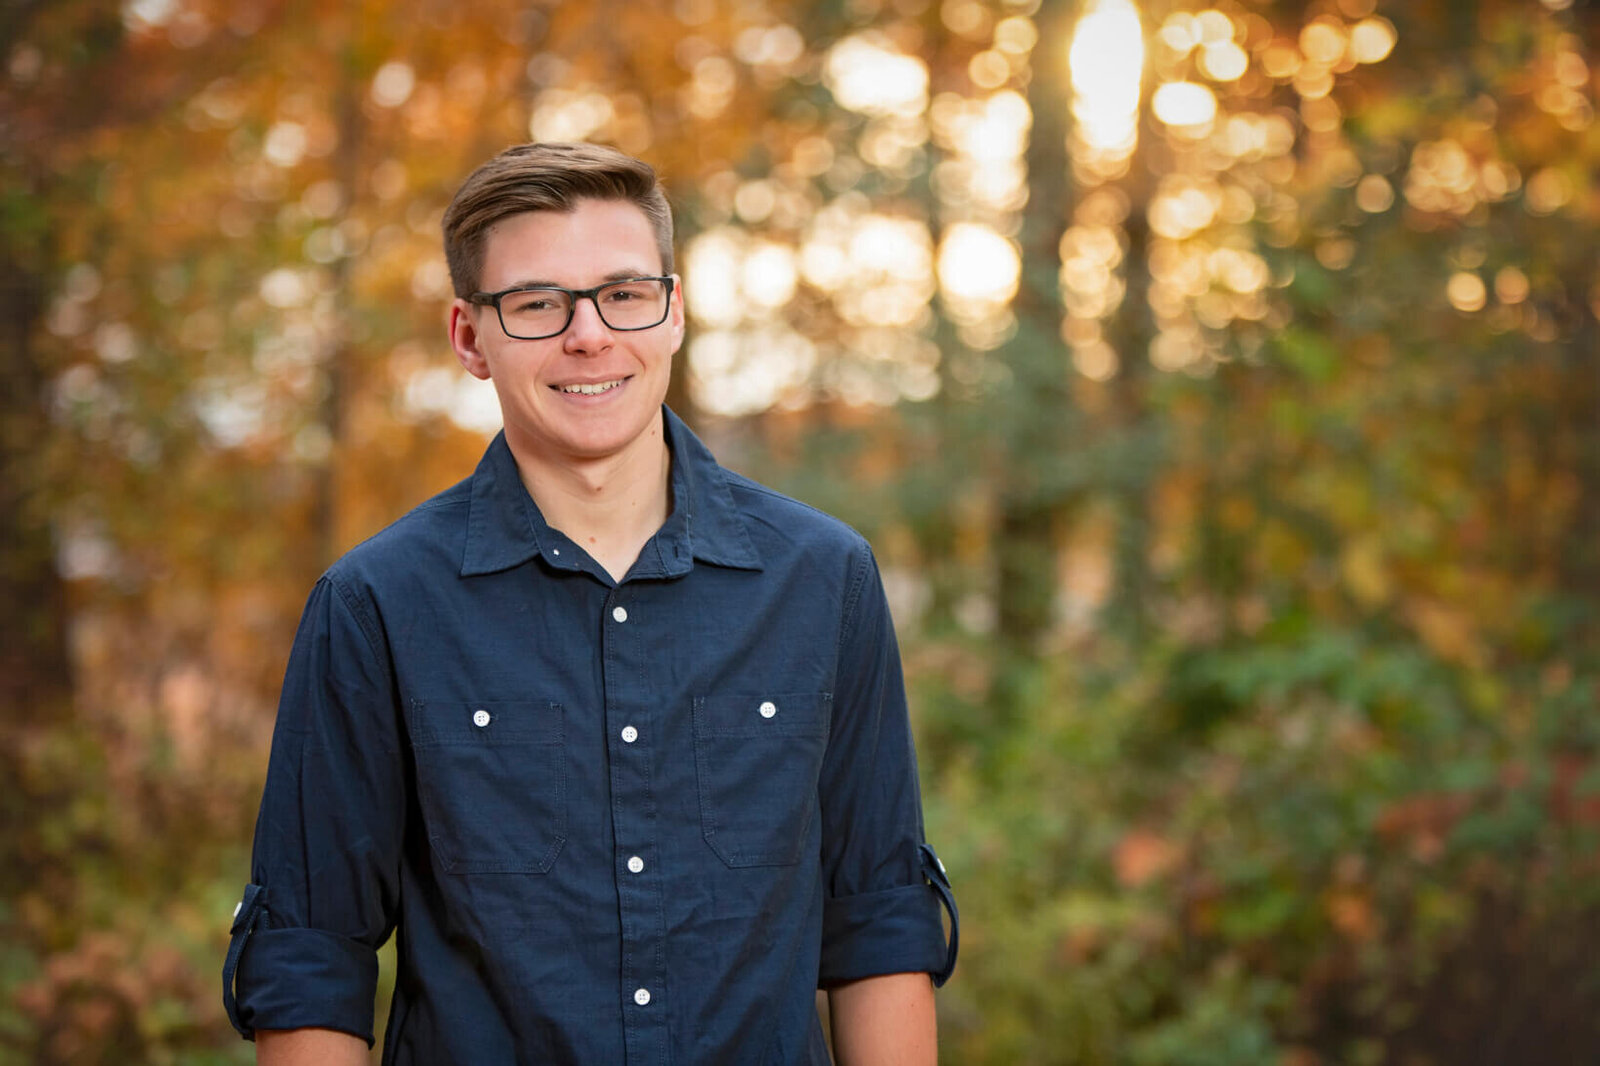 Senior-Portraits-Richfield-Historical-Park-Wisconsin-58